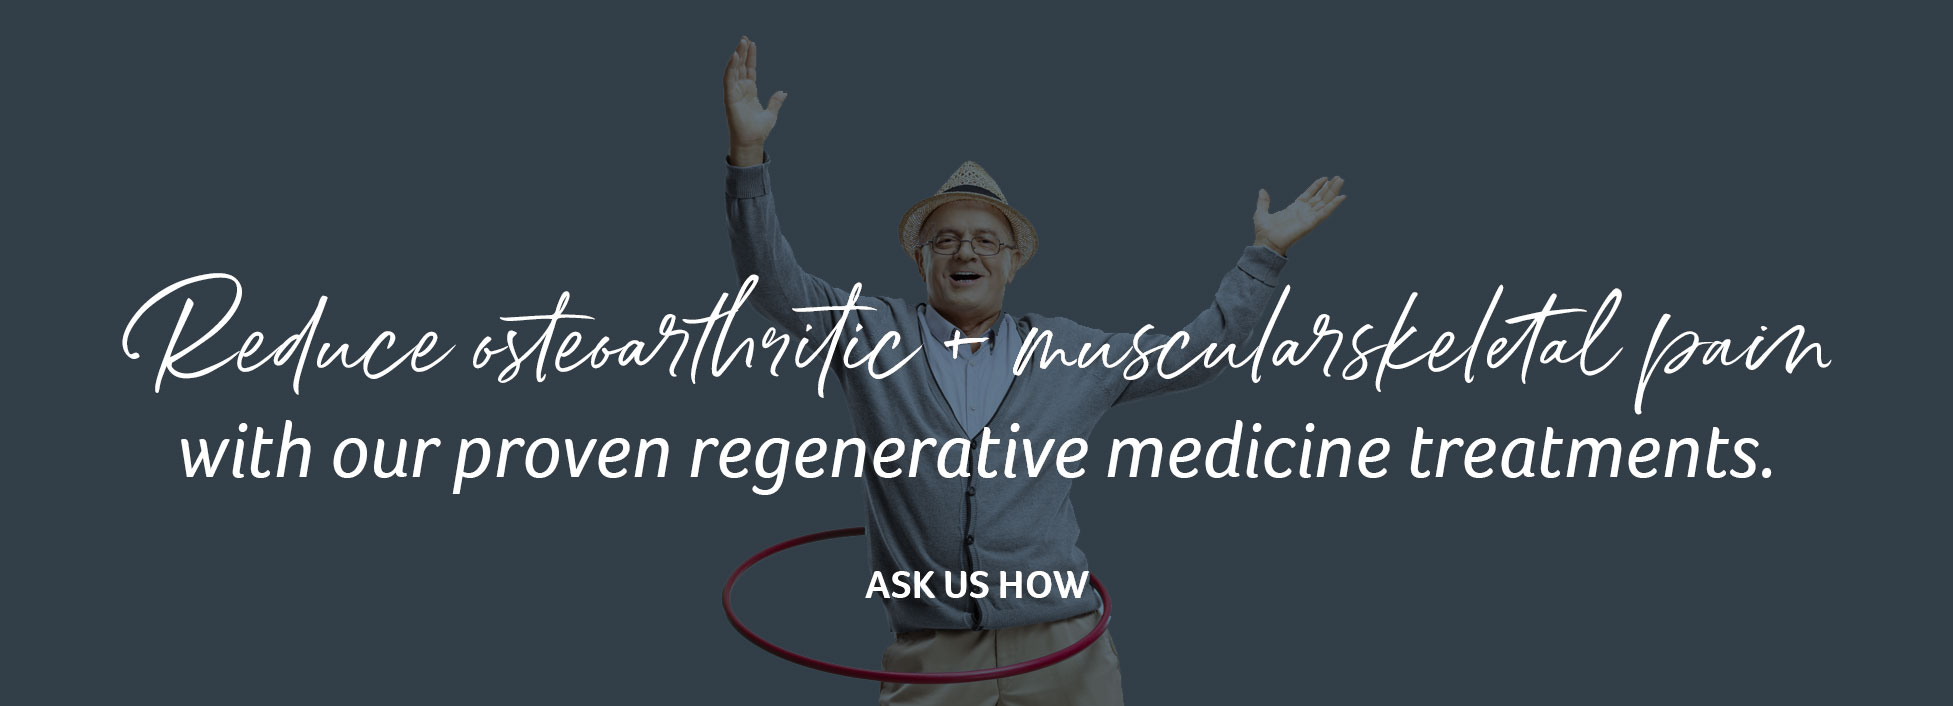 Reduce osteoarthritis and musculoskeletal pain with our regenerative medicine treatments.